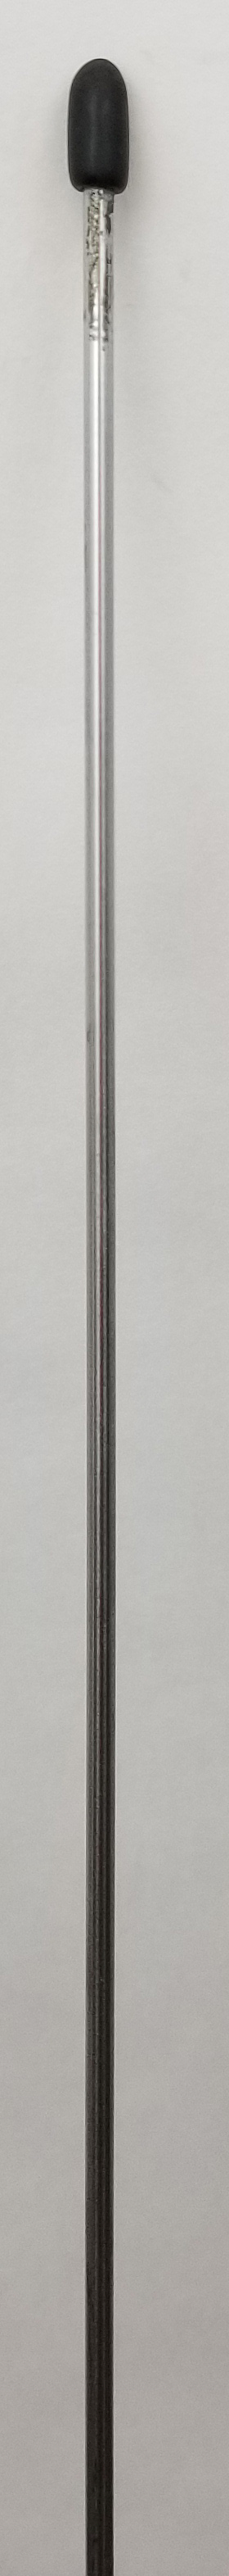 530RT - Valor 530 Replacement Rod